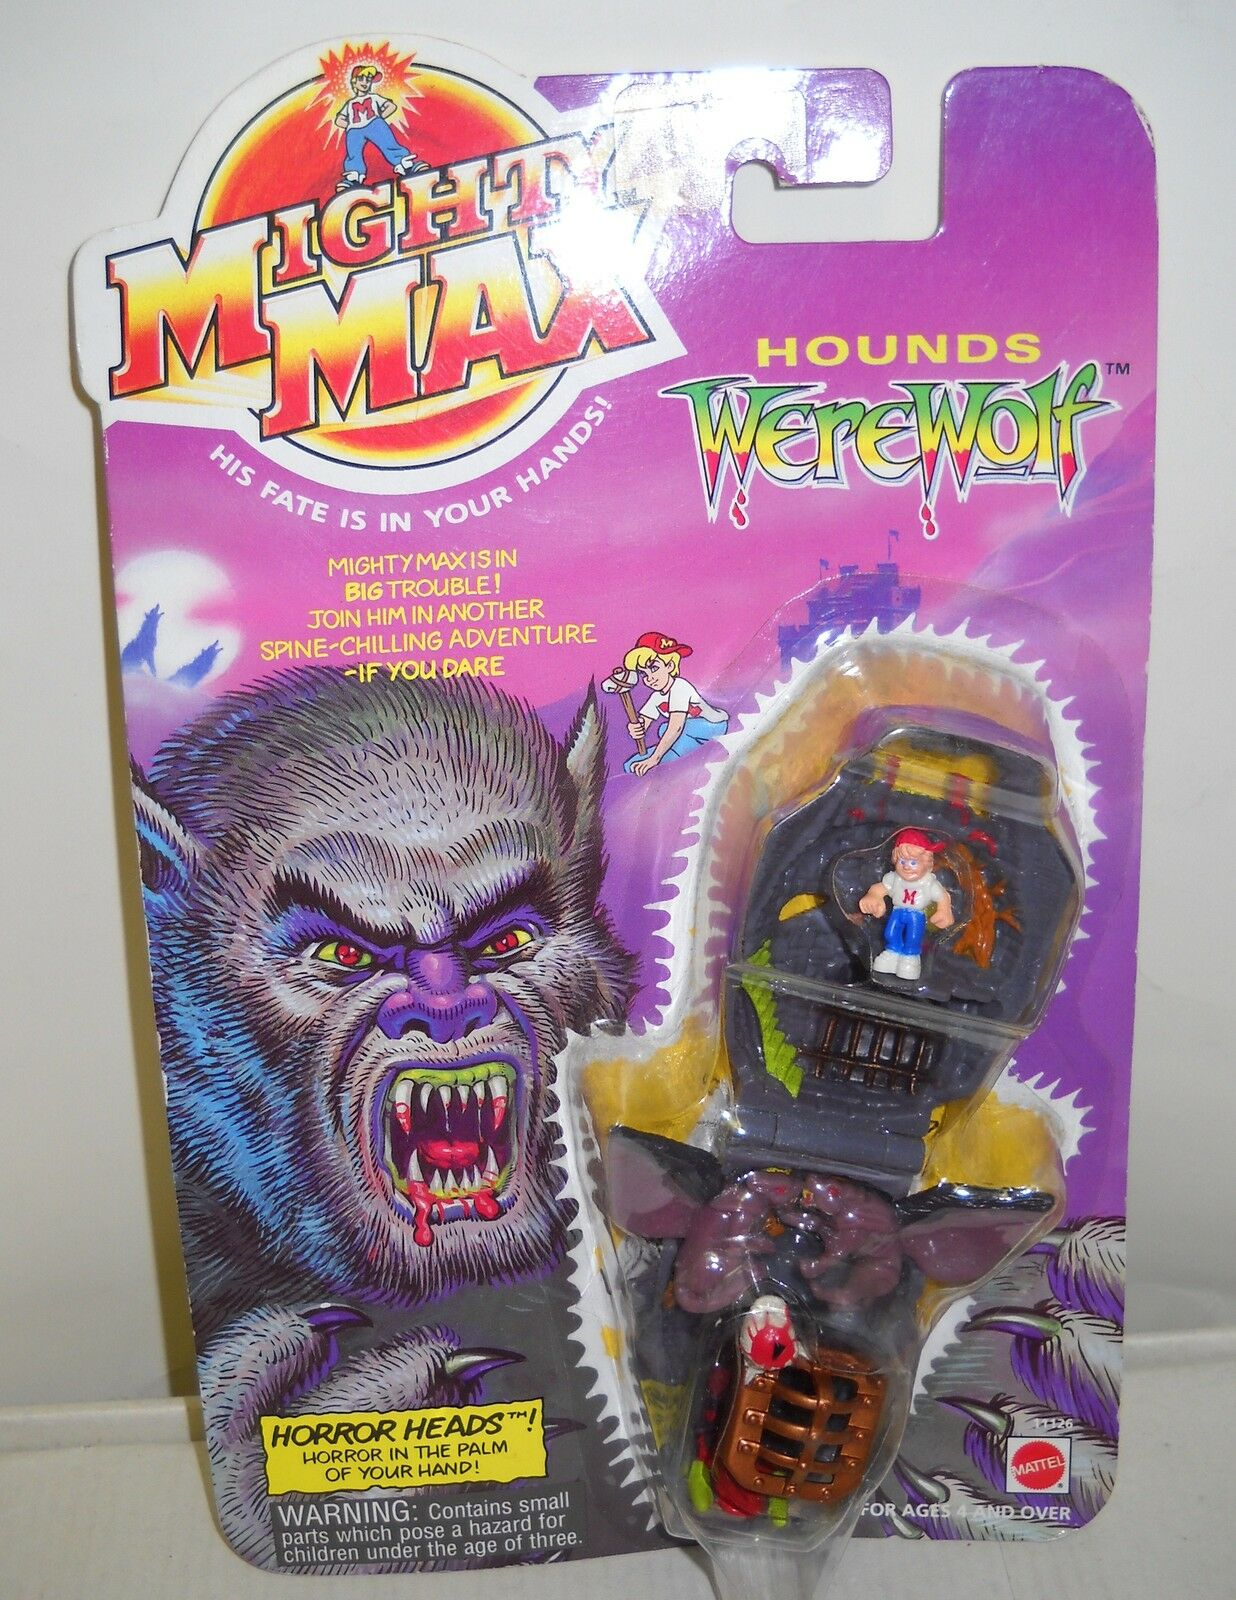 3119 NRFC Vintage Mattel Might Max Horror Heads Hounds Werewolf Mini Playset